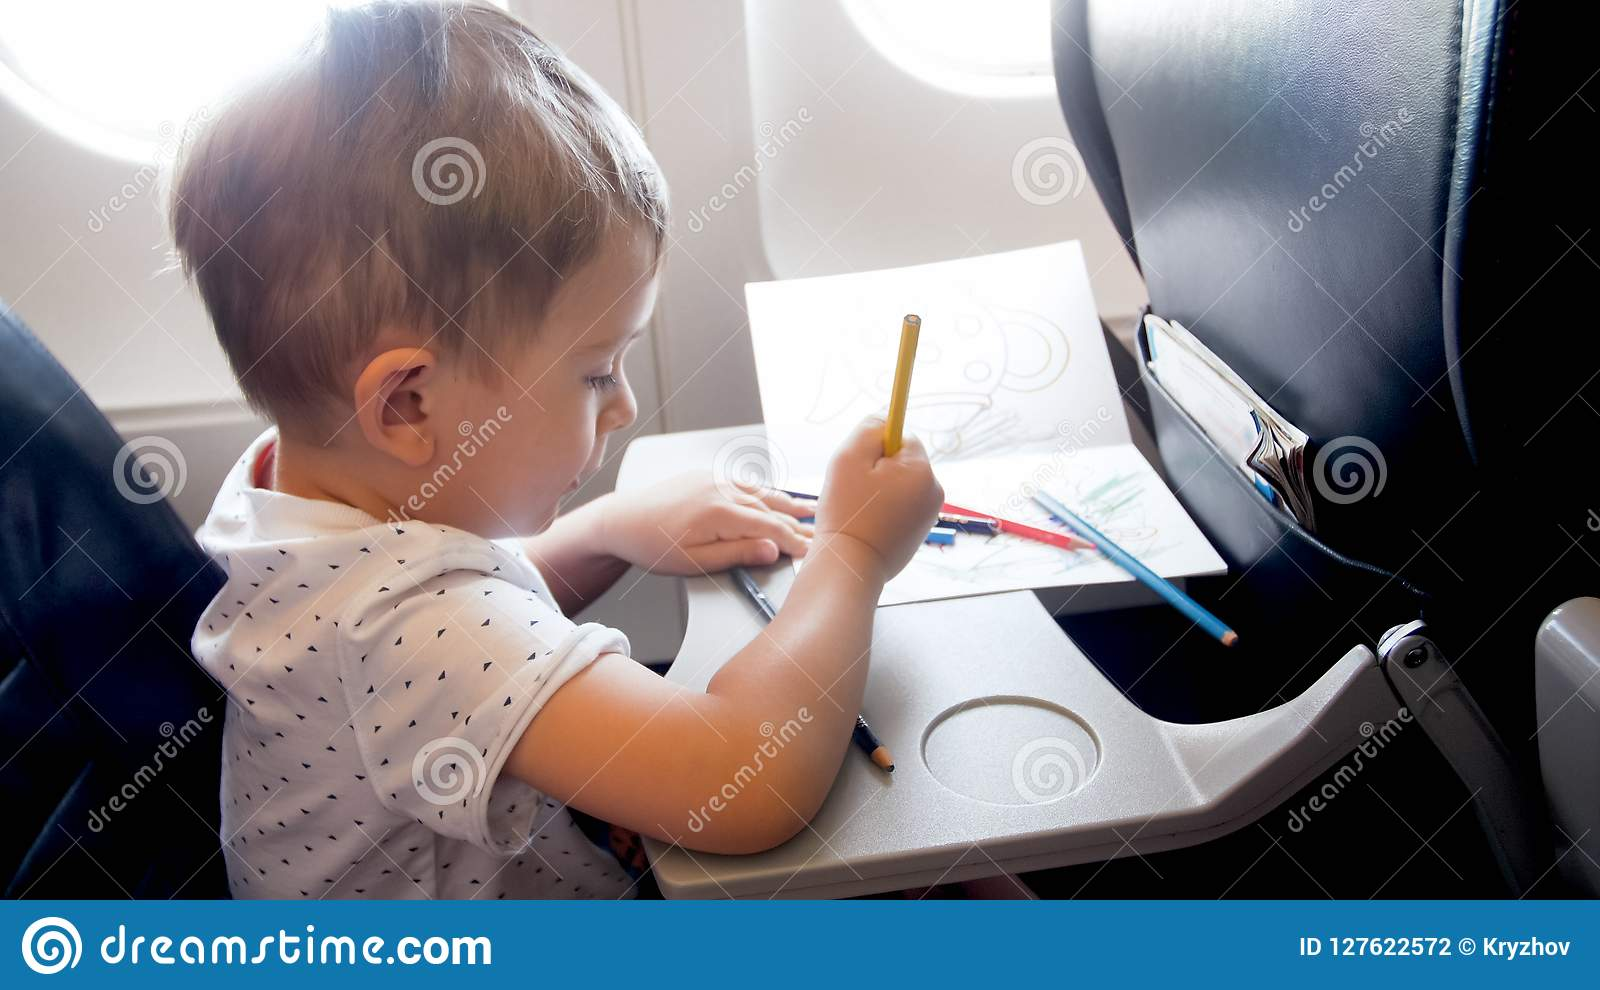 Toned portrait of little boy traveling by plane and drawing with pencils during long flight